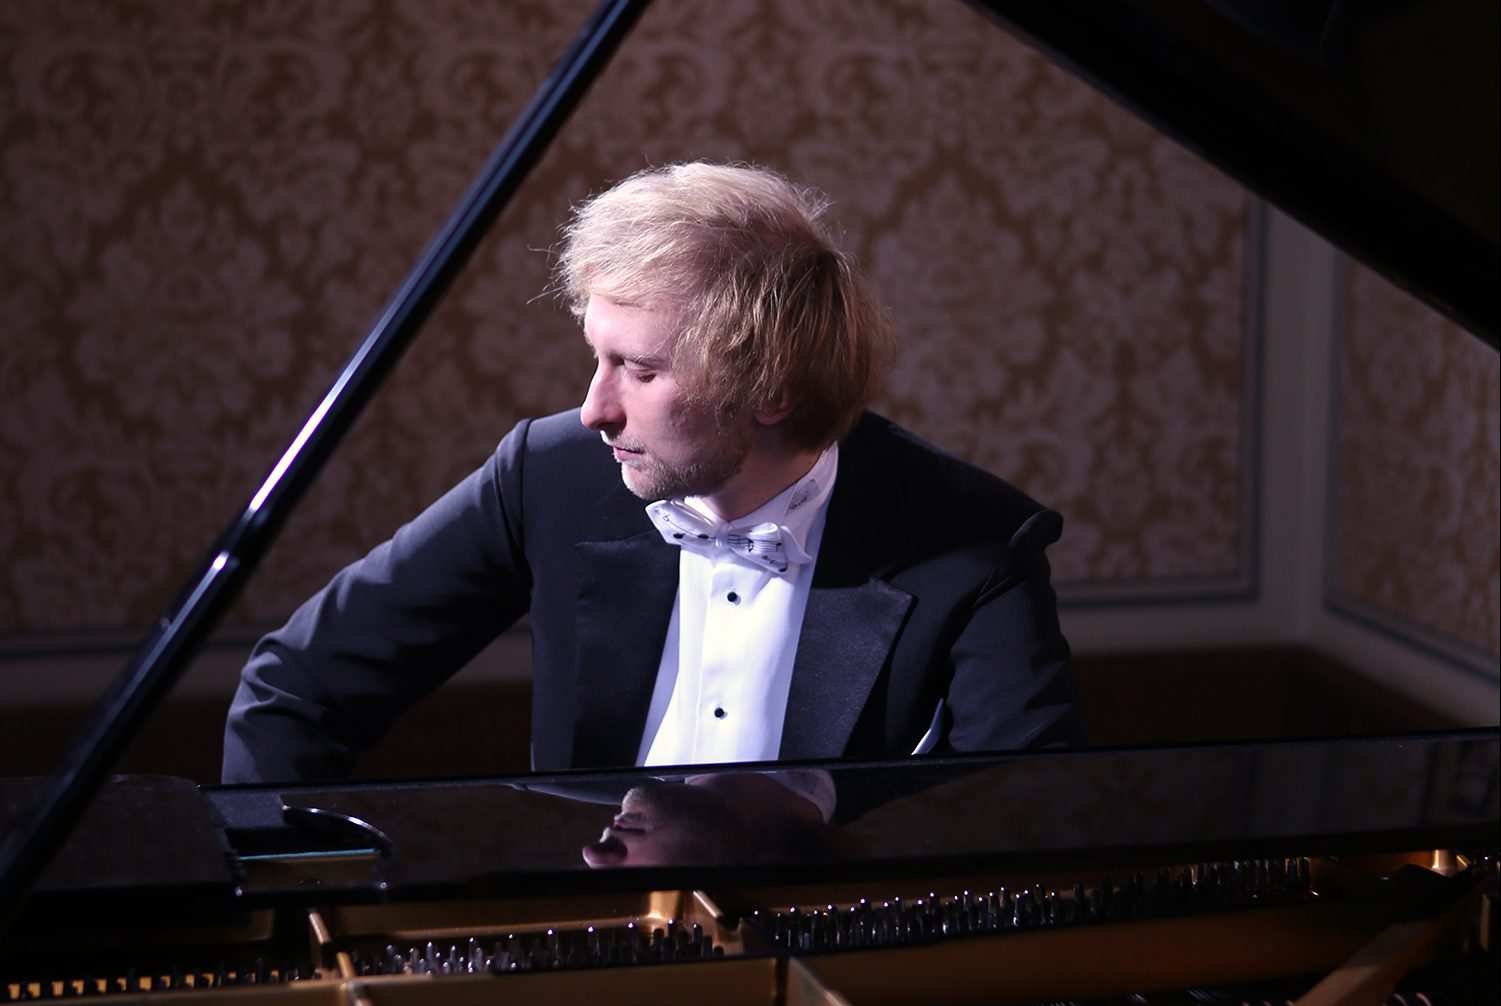 During the prestigious Monte Carlo festival Ivo Kahánek will take part in a piano roulette: 4 concerts in 1 evening